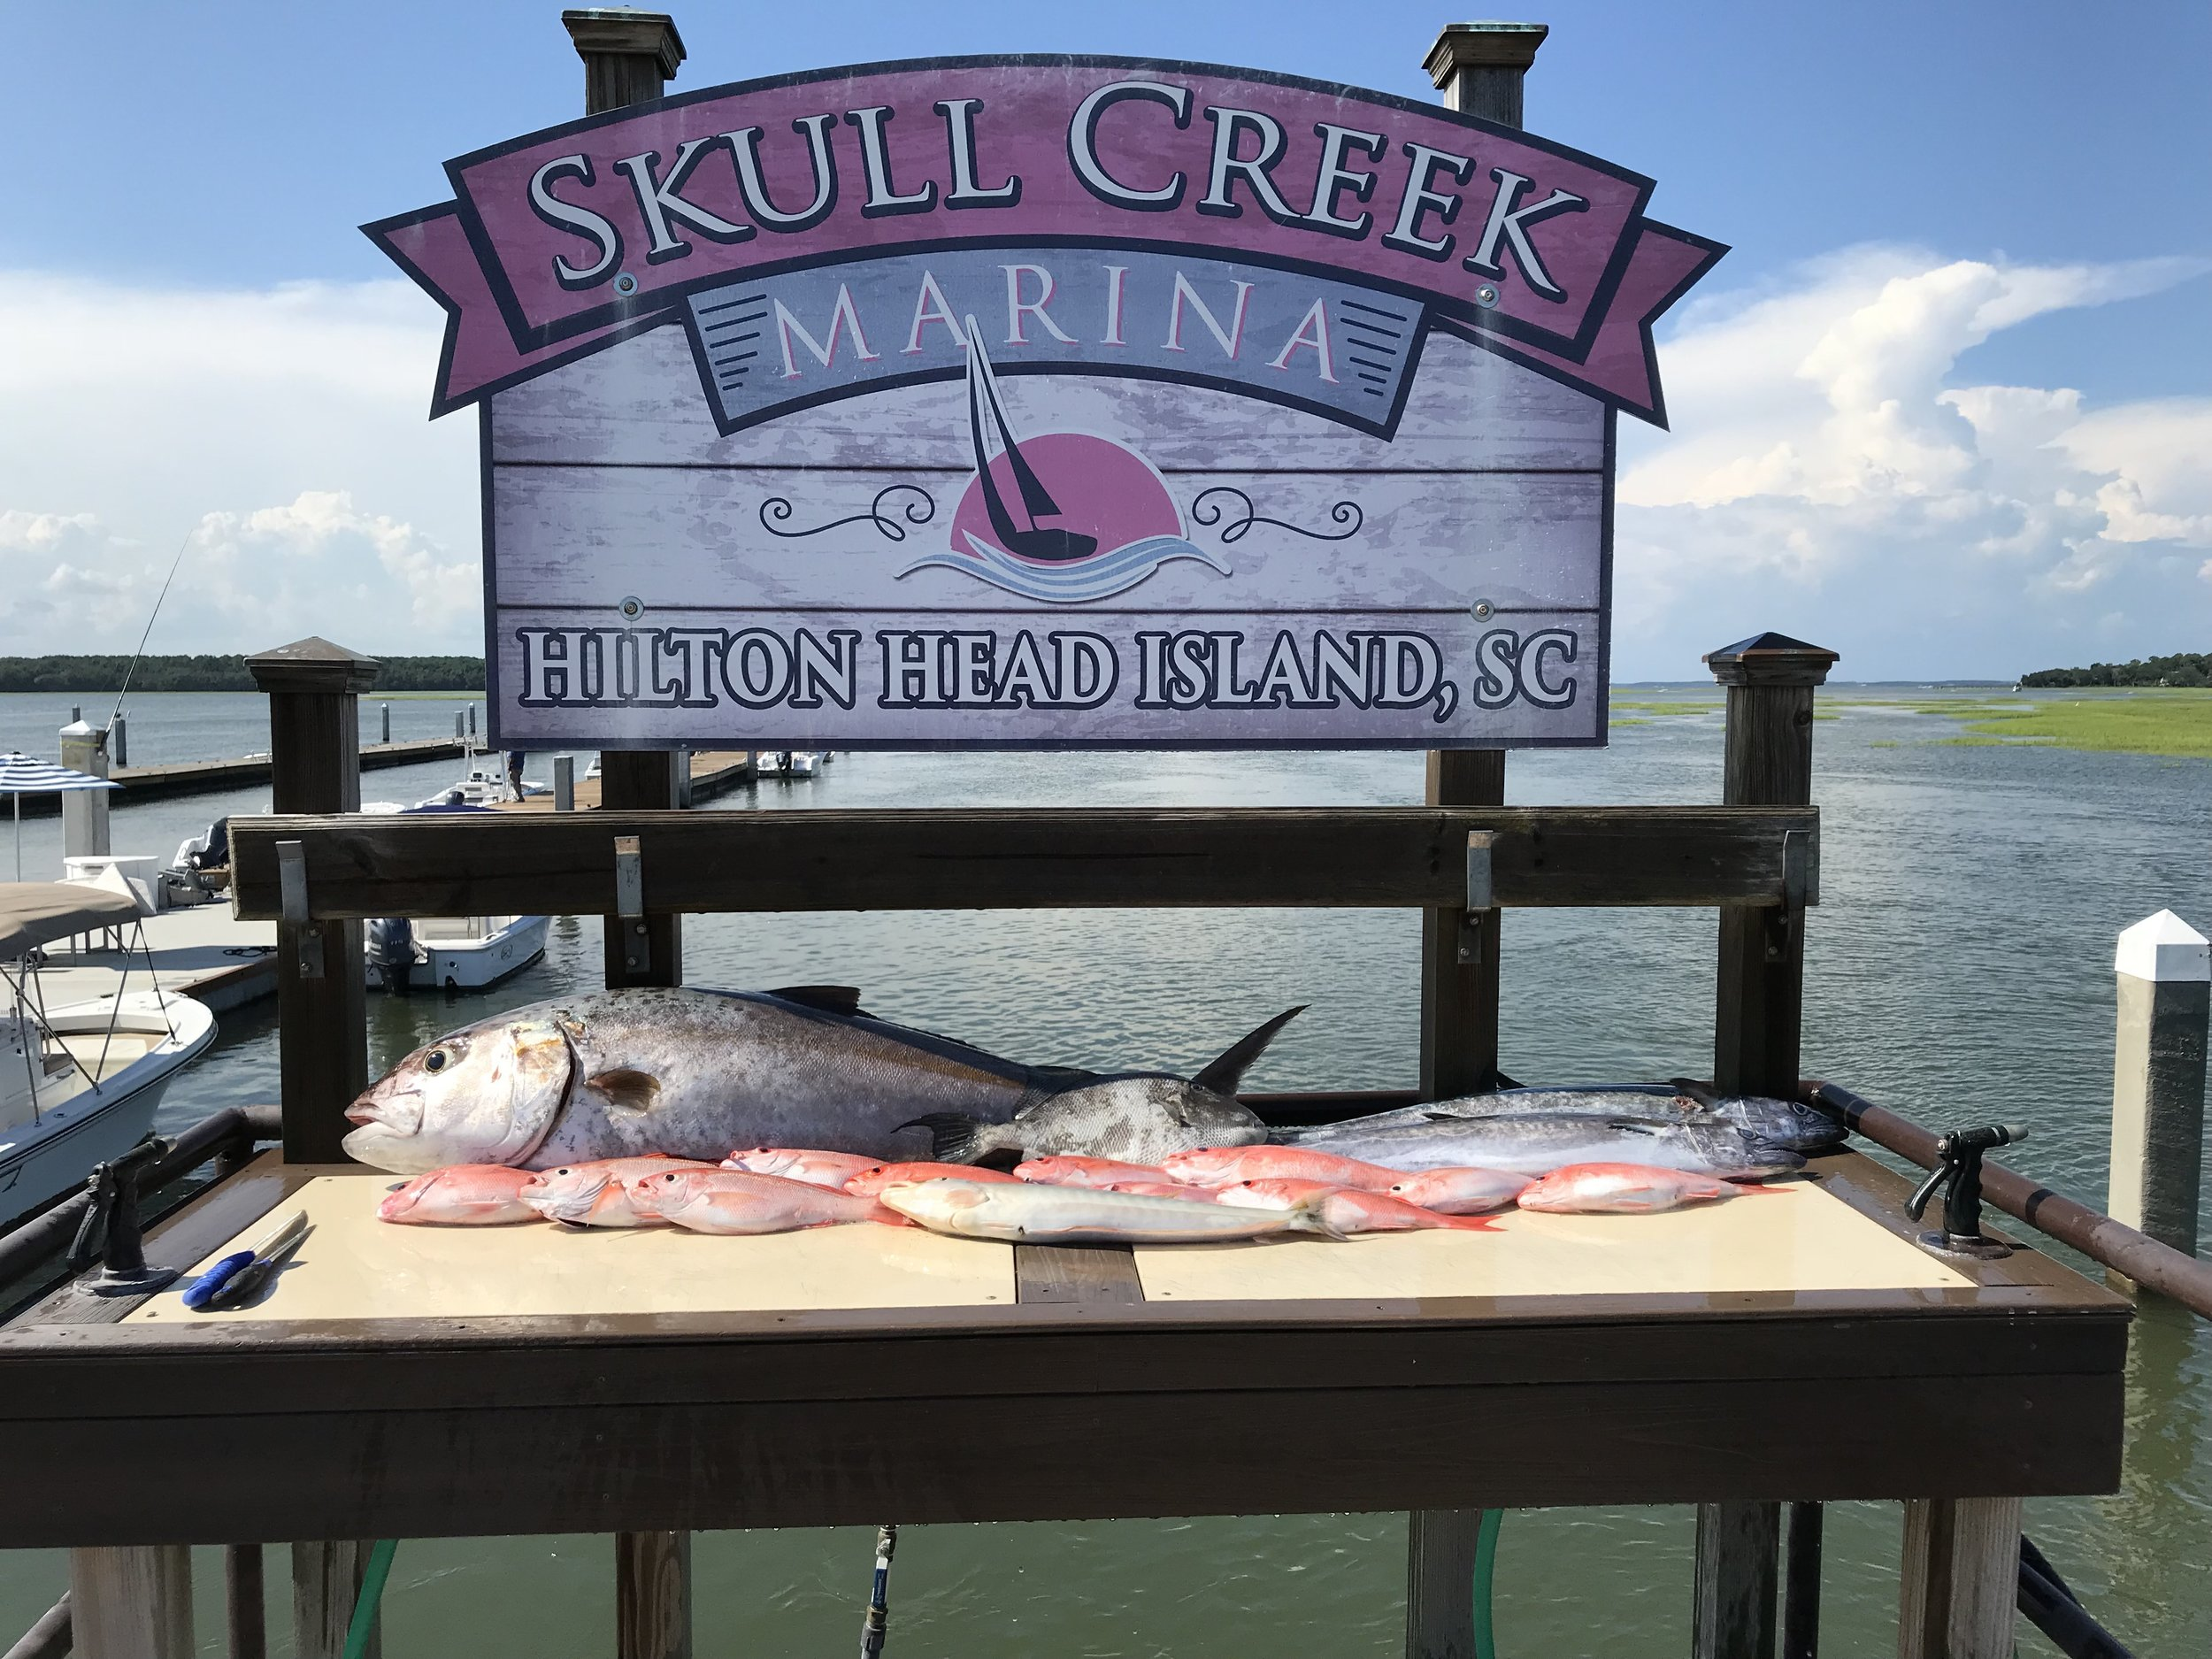 "Where to Meet - Skull Creek Marina is located on Hilton Head Plantation, a gate access community. I will call in a Plantation Security pass for you! Since the marina is located closest to the fishing grounds, your tour spends more time fishing rather than traveling through ""No Wake Zones""."